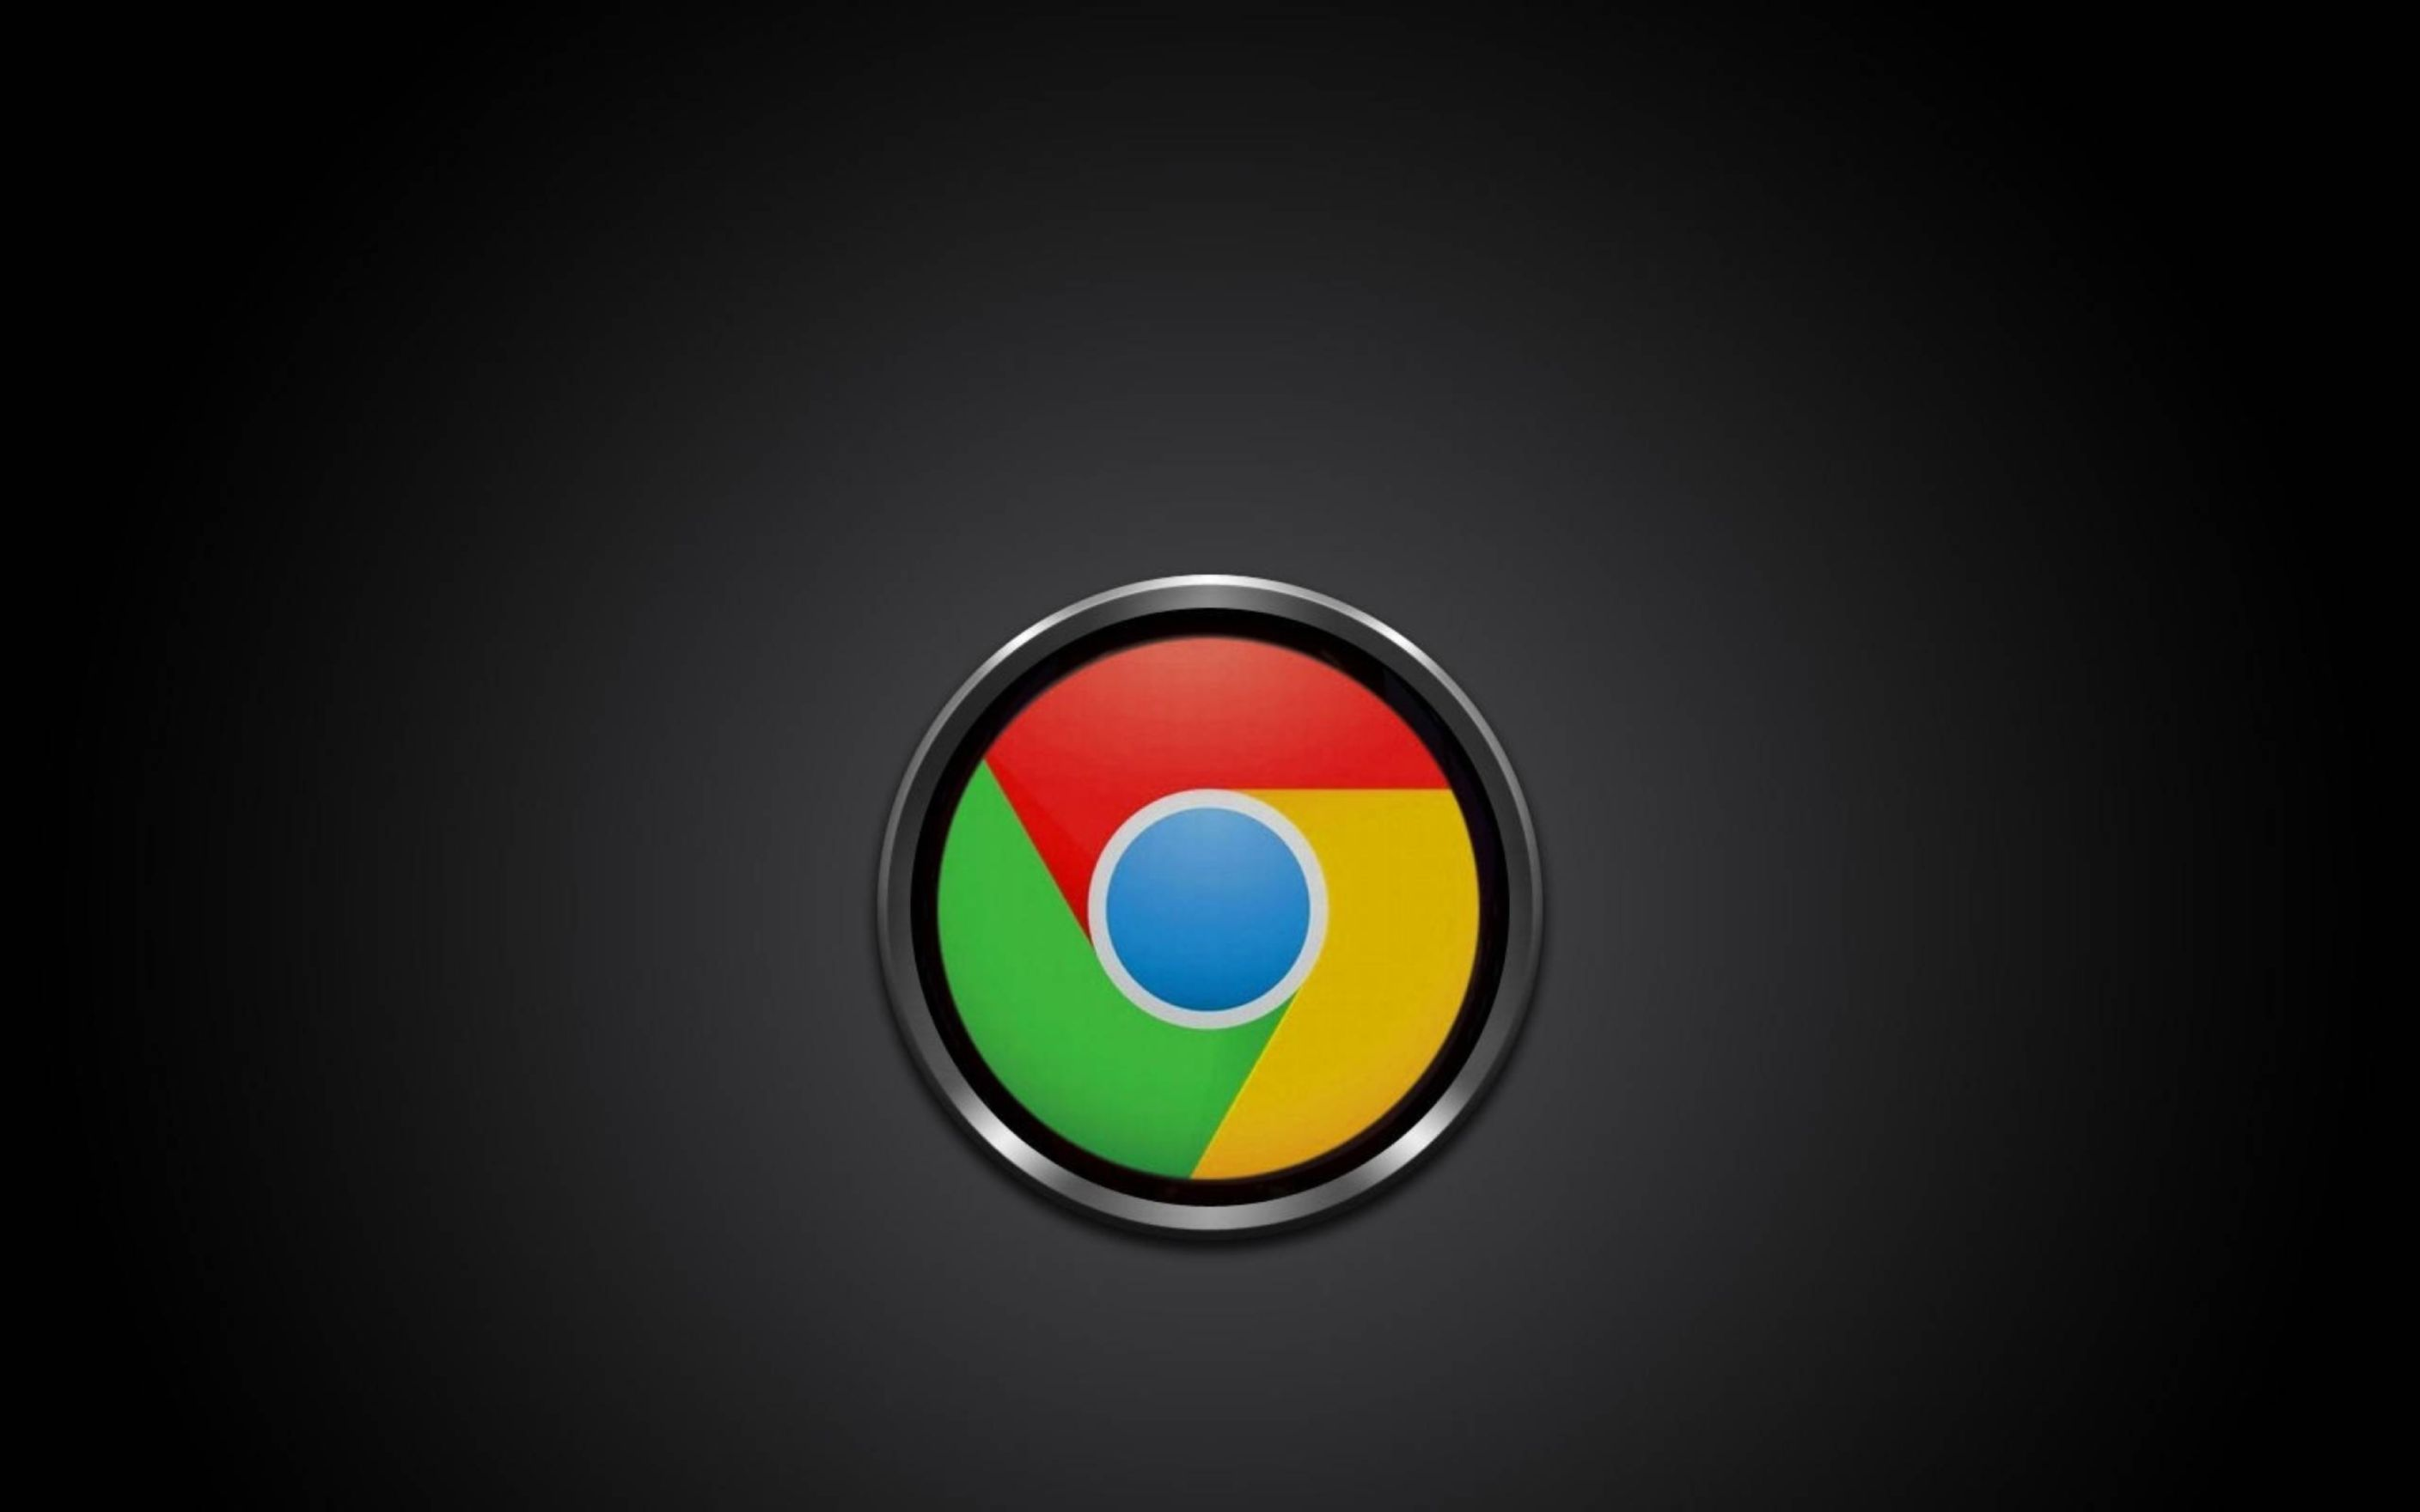 Download free HD Chrome HD 2560×1600 Wallpaper, image